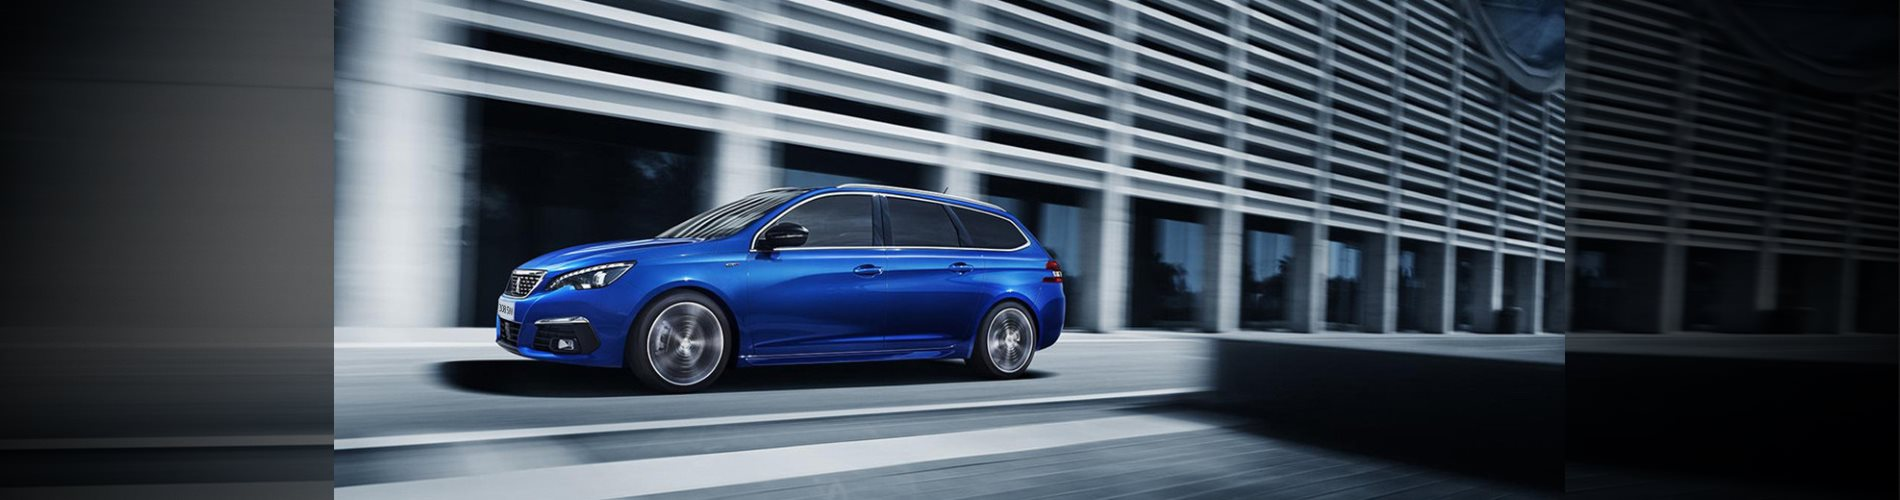 New Peugeot 308 S W Offer at Wycliffe Peugeot Rugby